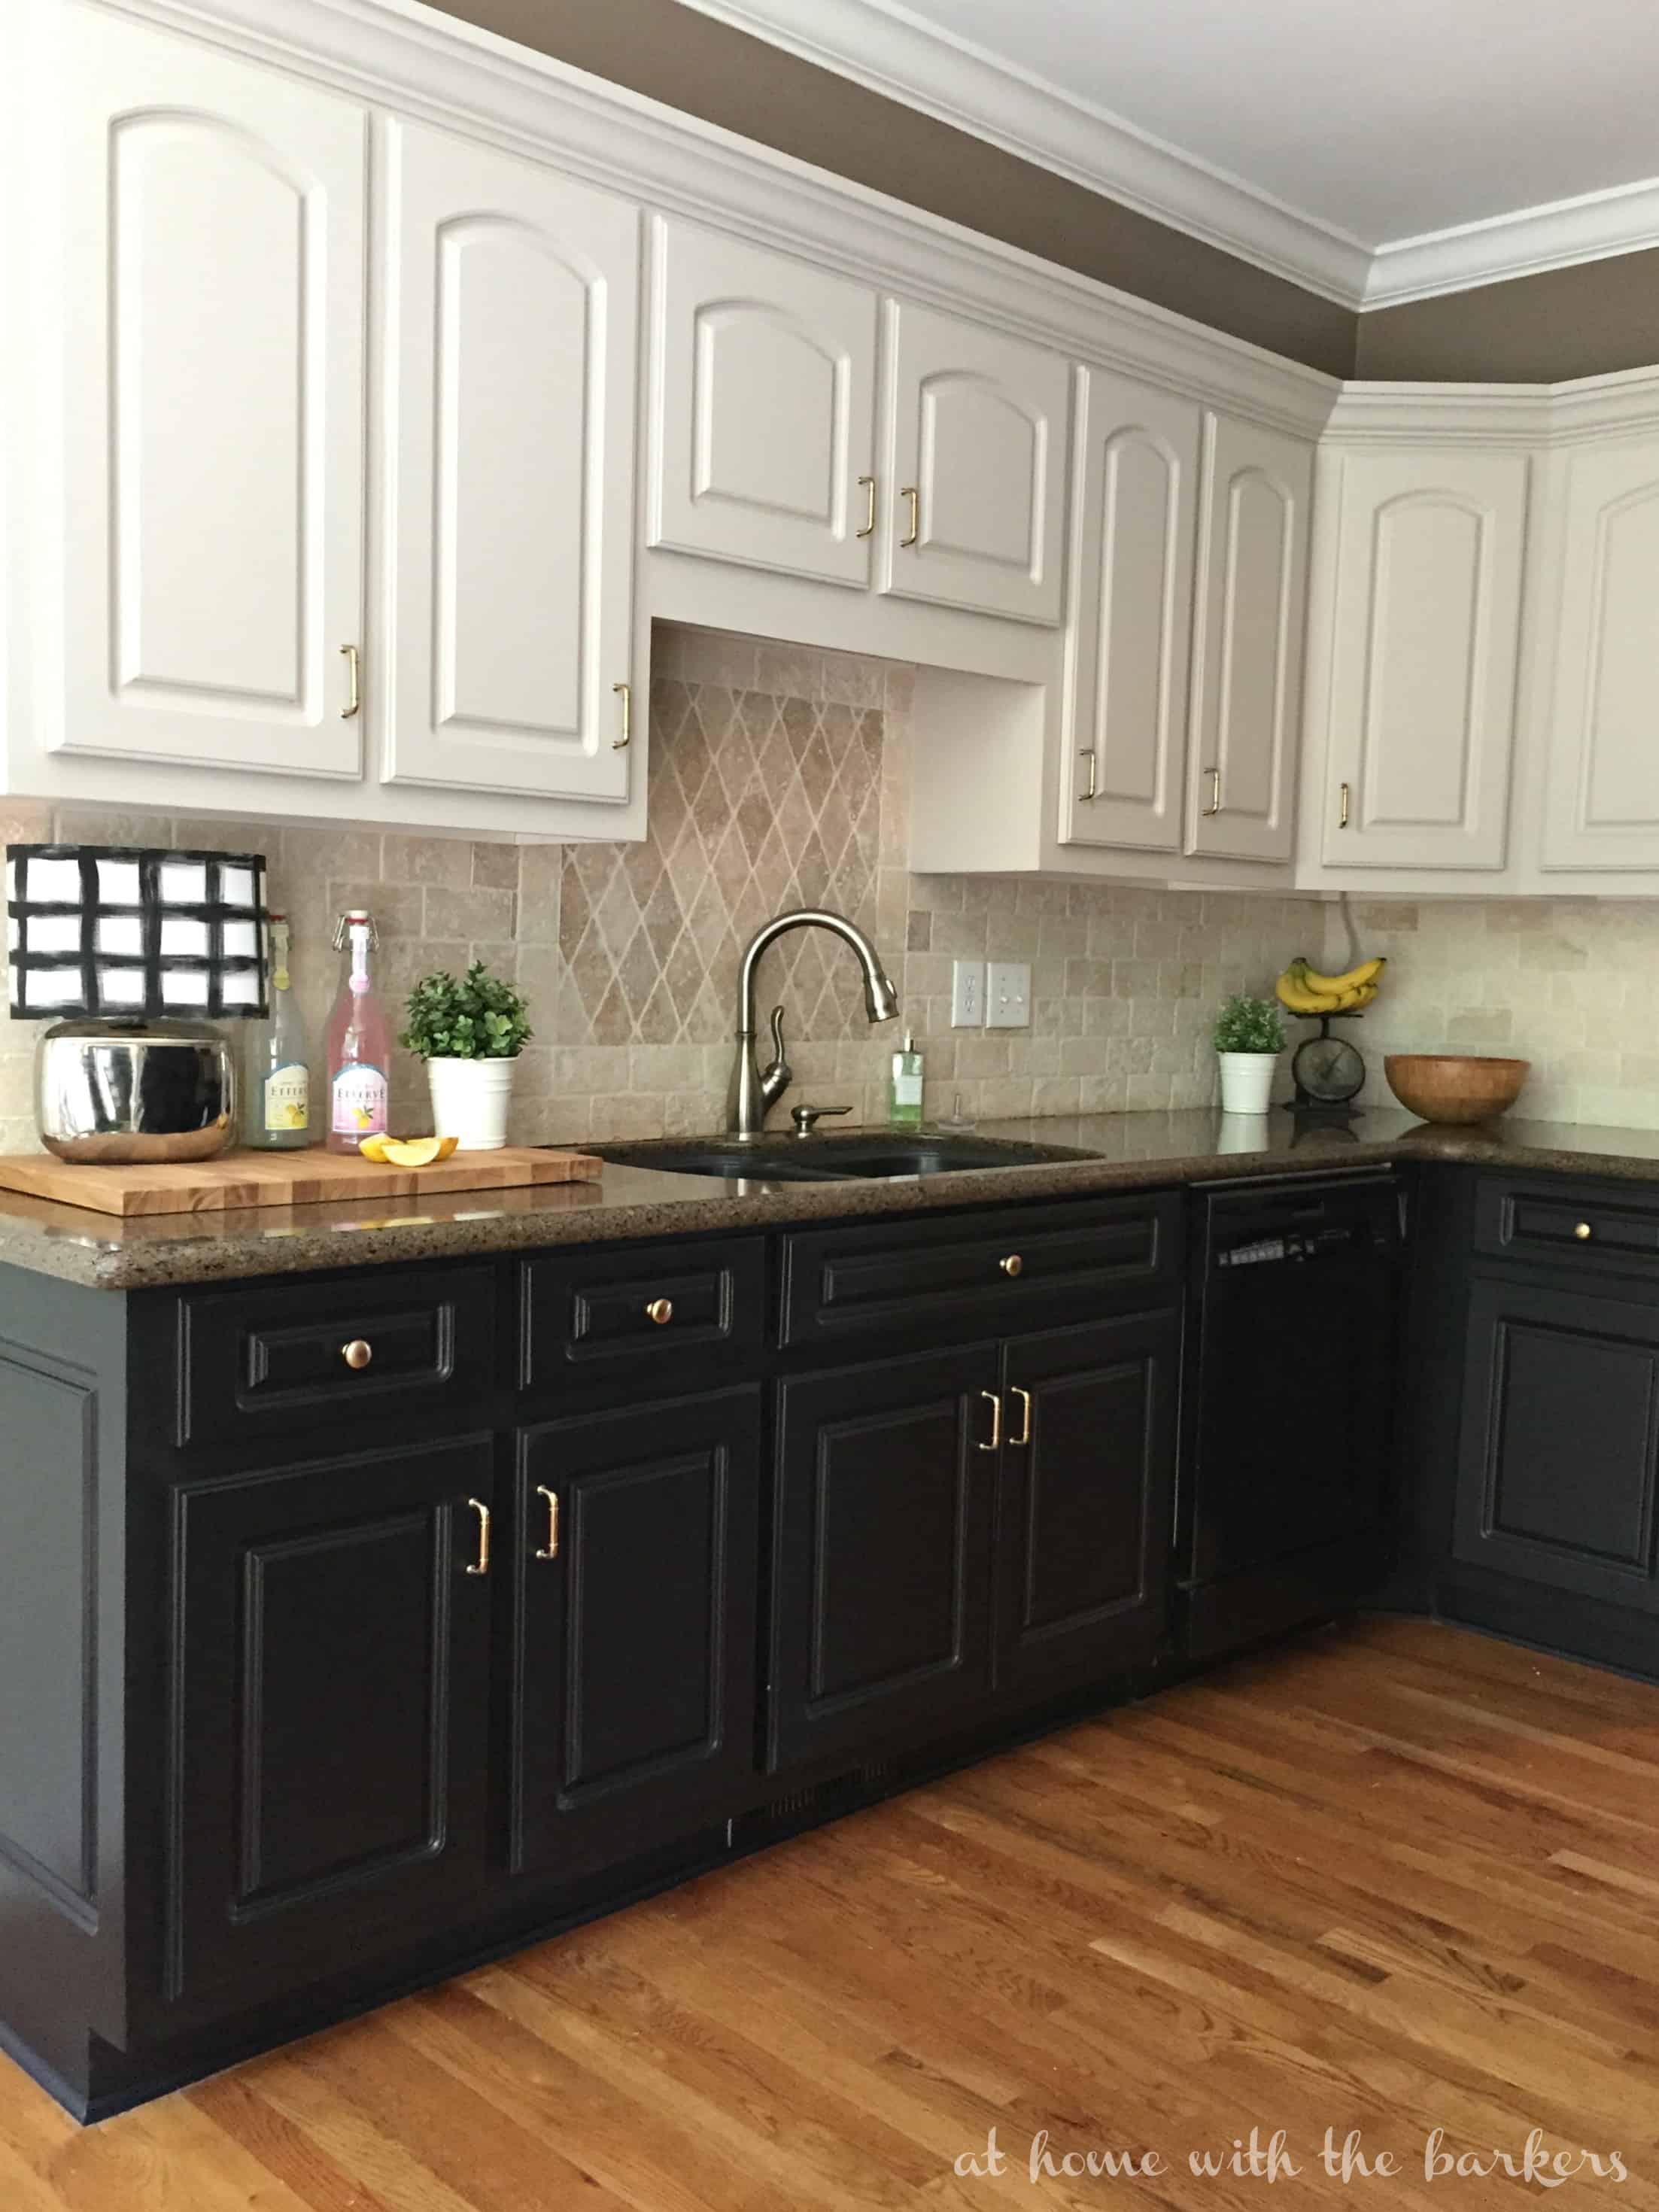 Black kitchen cabinets the ugly truth at home with the Pictures of painted cabinets